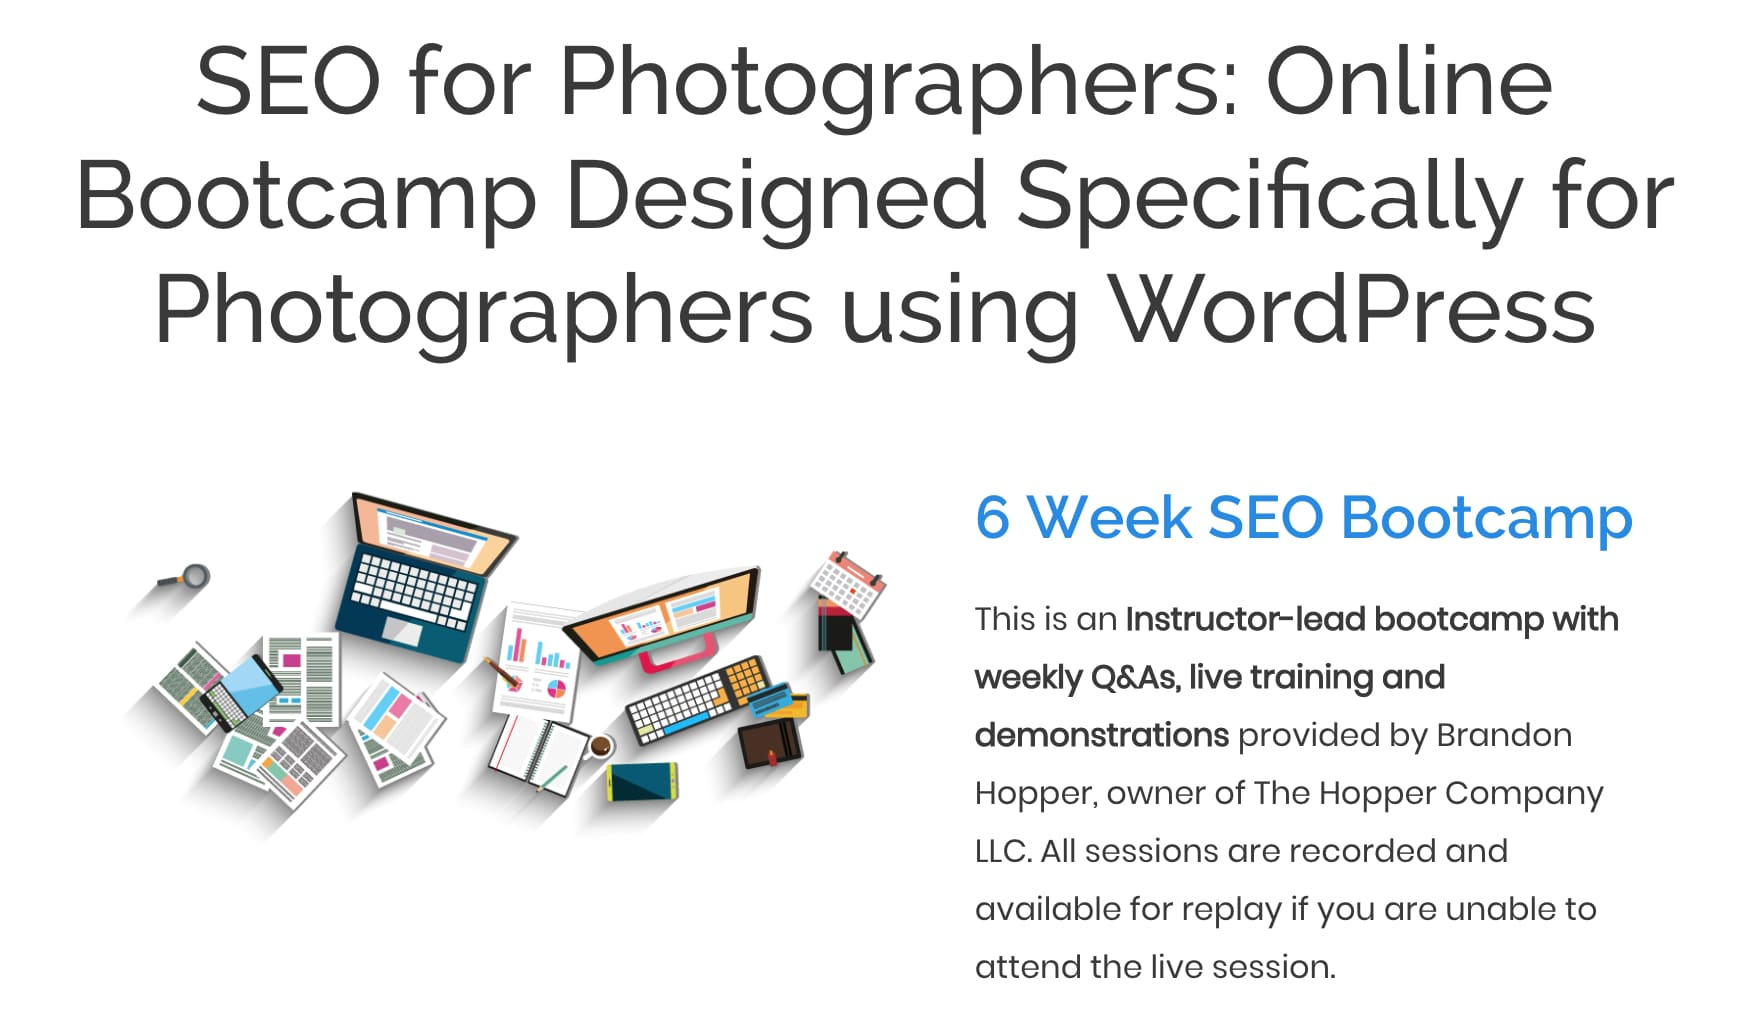 seo bootcamp for photographers